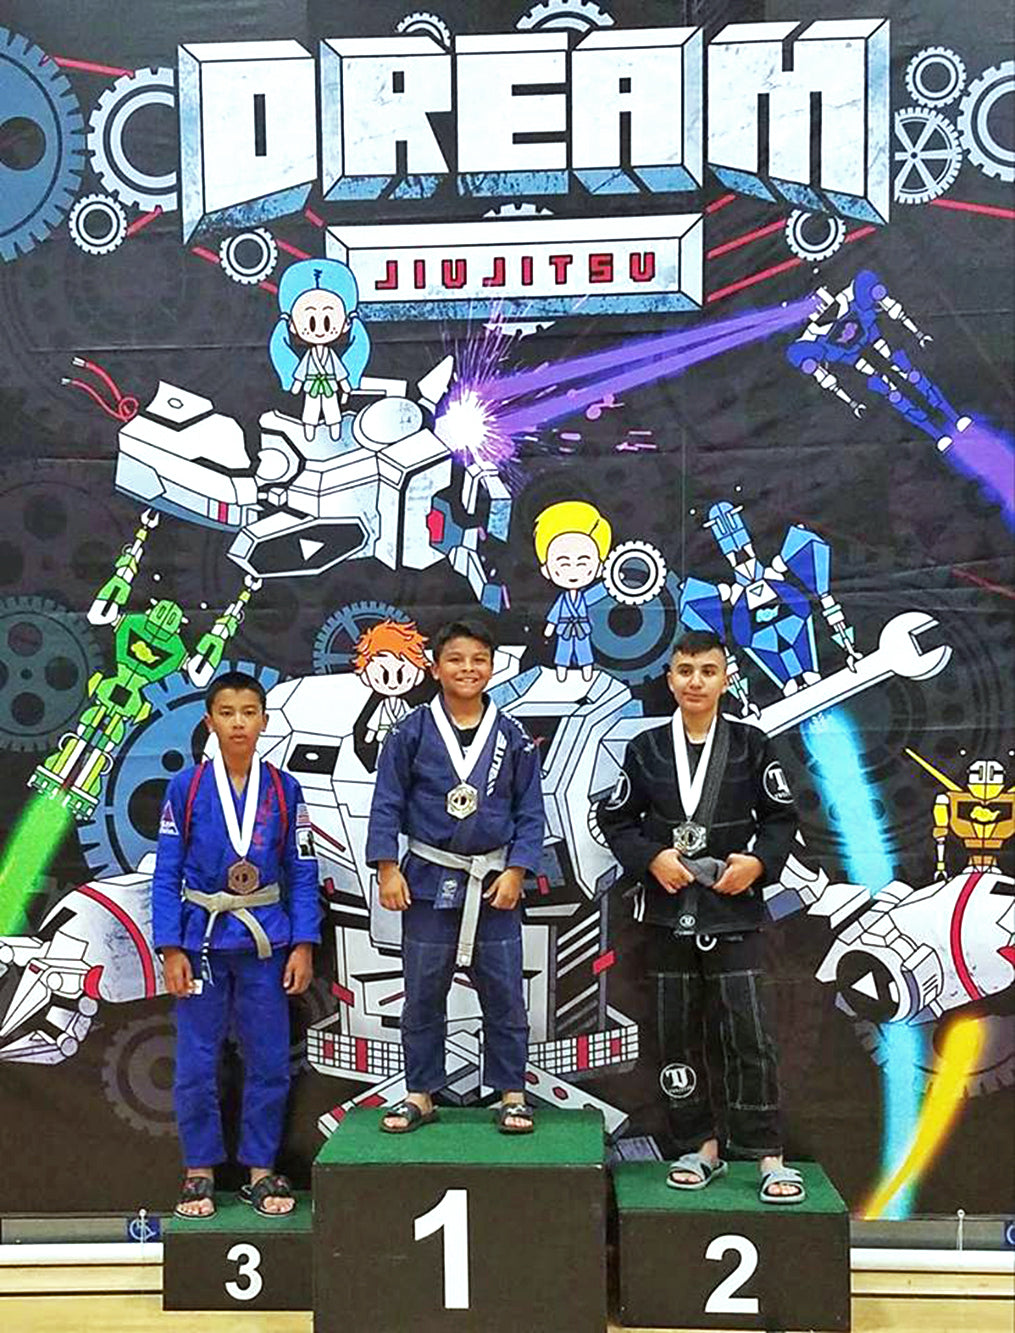 Elite Sports Team Elite Bjj Fighter Gabriel Garcia (Martelo)  Image17